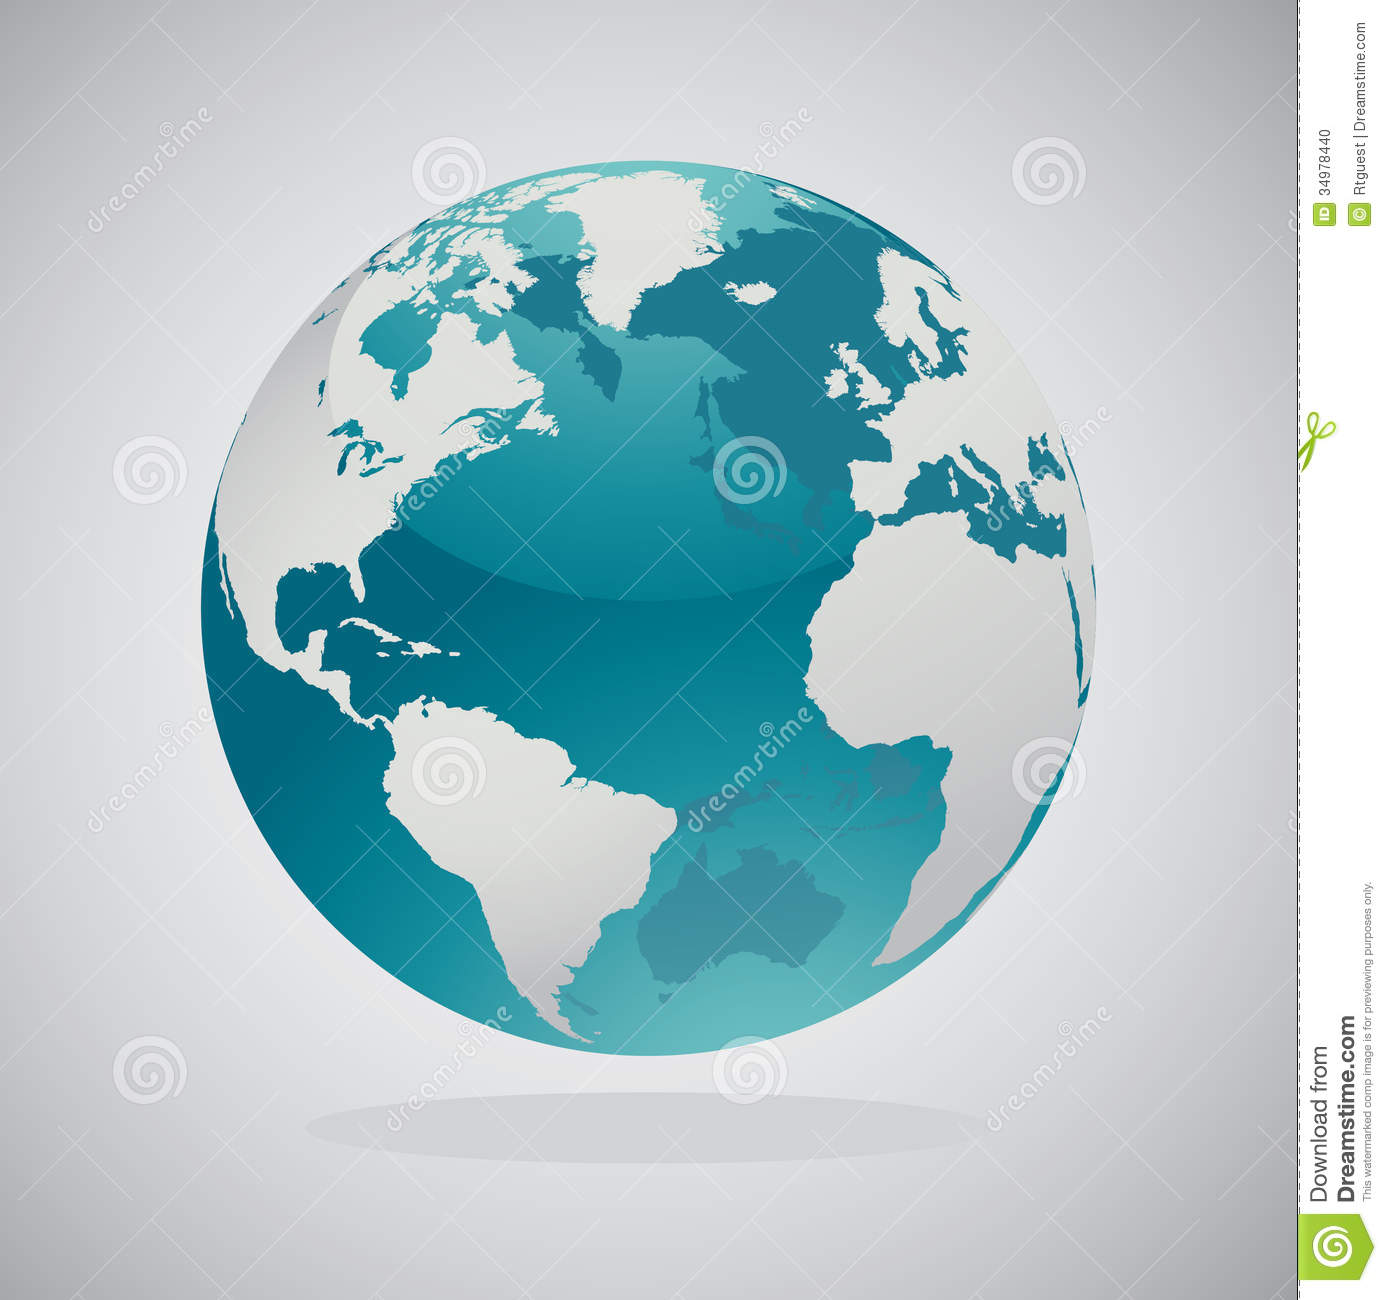 world map globe primap world maps